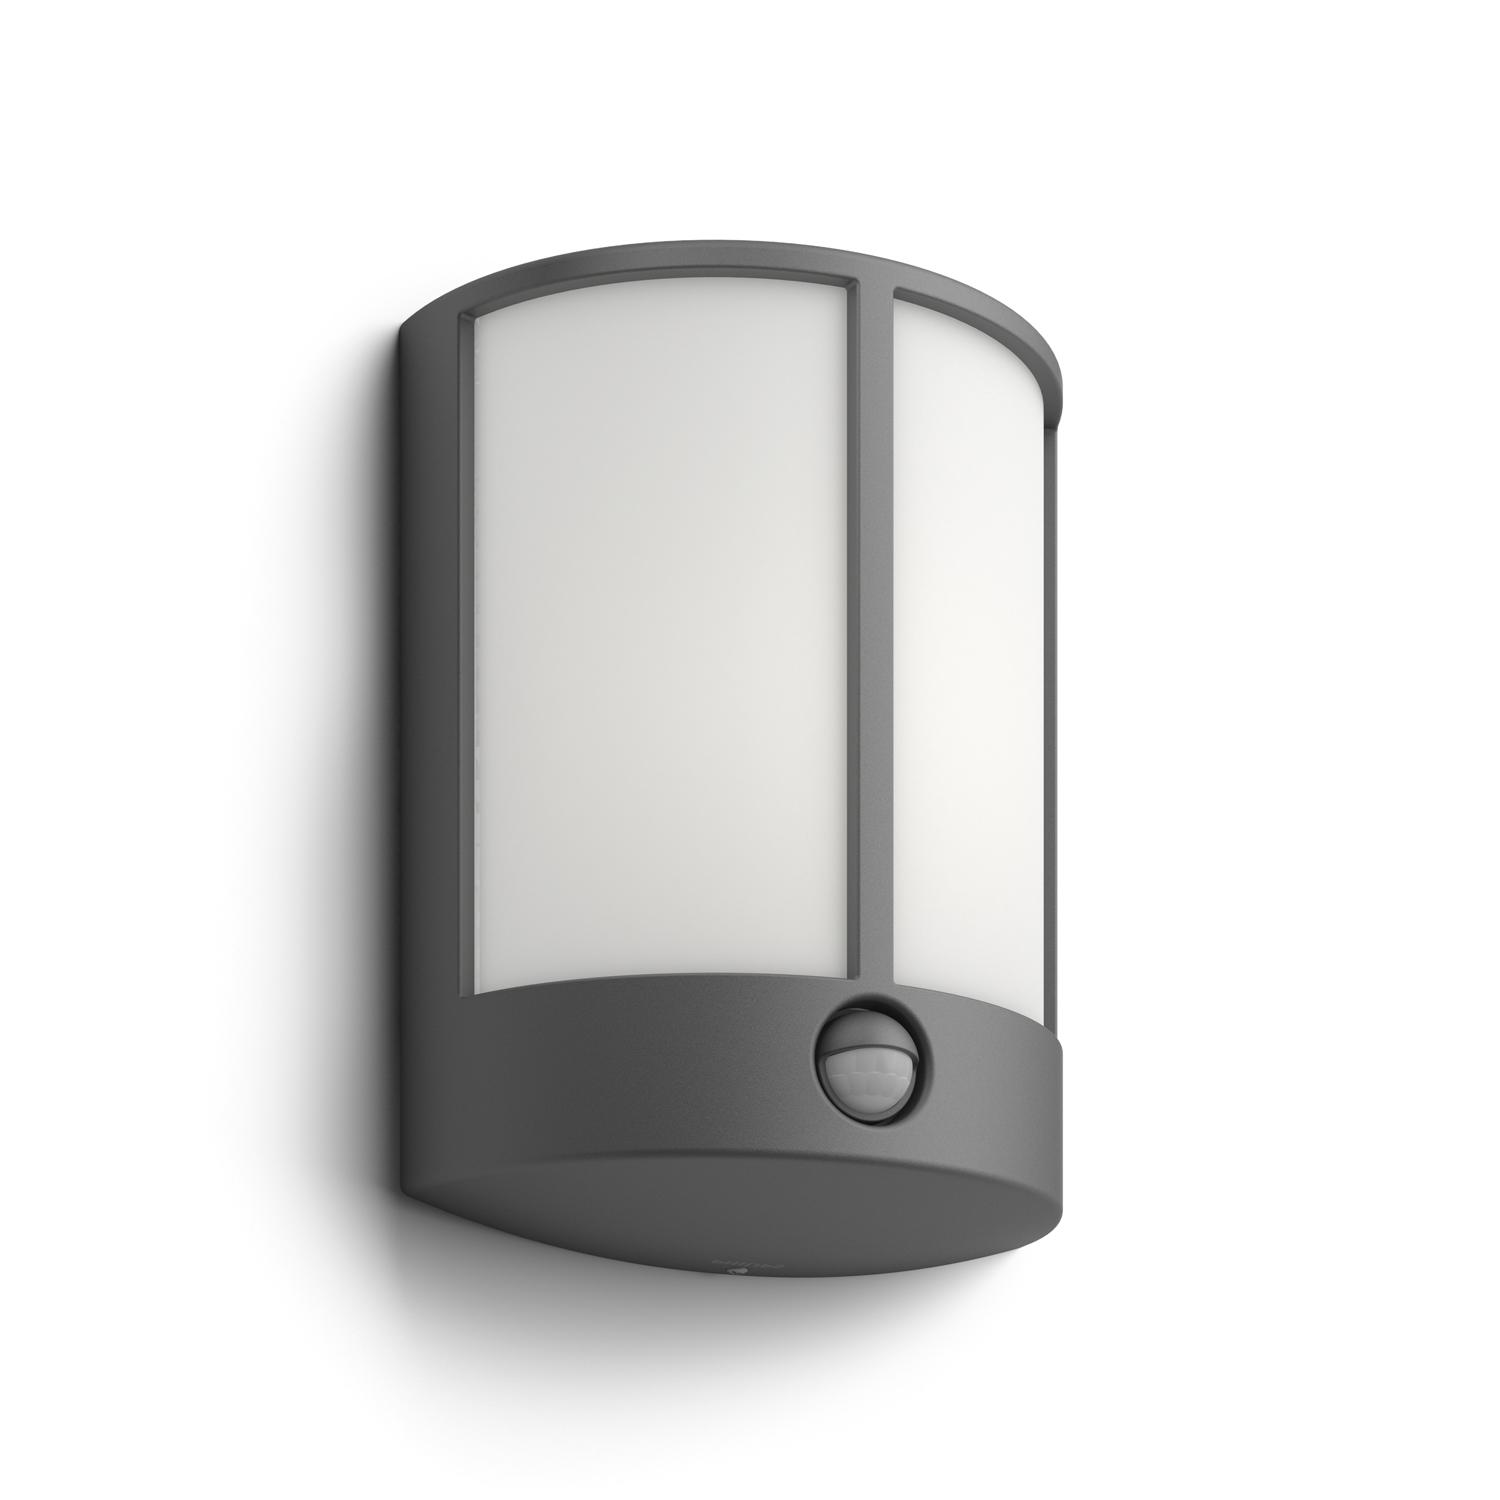 Outside Lights Wickes: Philips MyGarden Stock LED Outdoor Wall Light With Motion